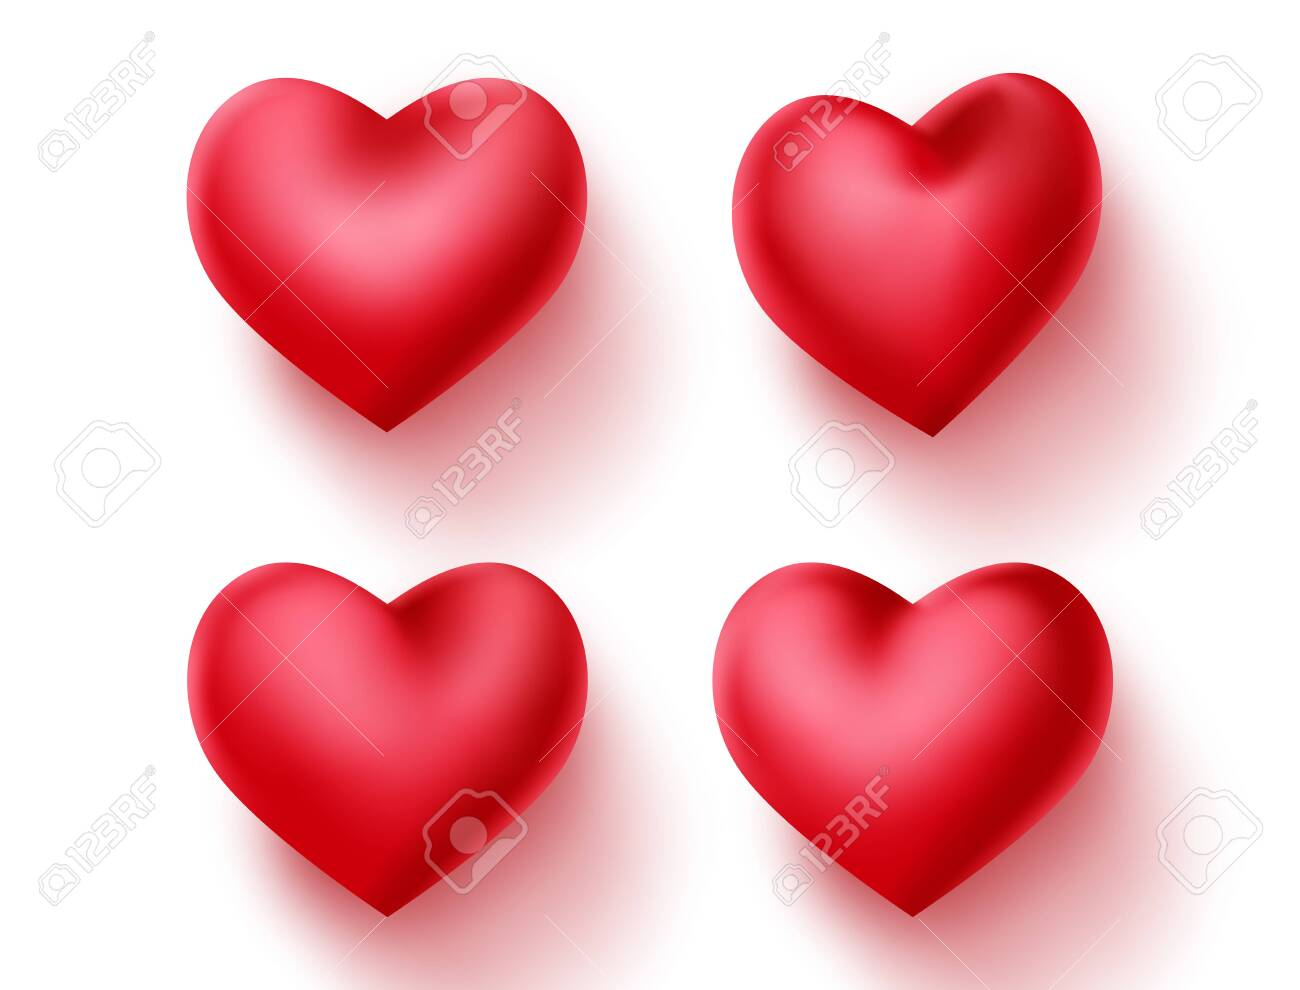 Heart valentines vector decoration set. Red hearts element for valentine sign and symbol isolated in empty white background. 3d realistic vector illustration. - 136077603